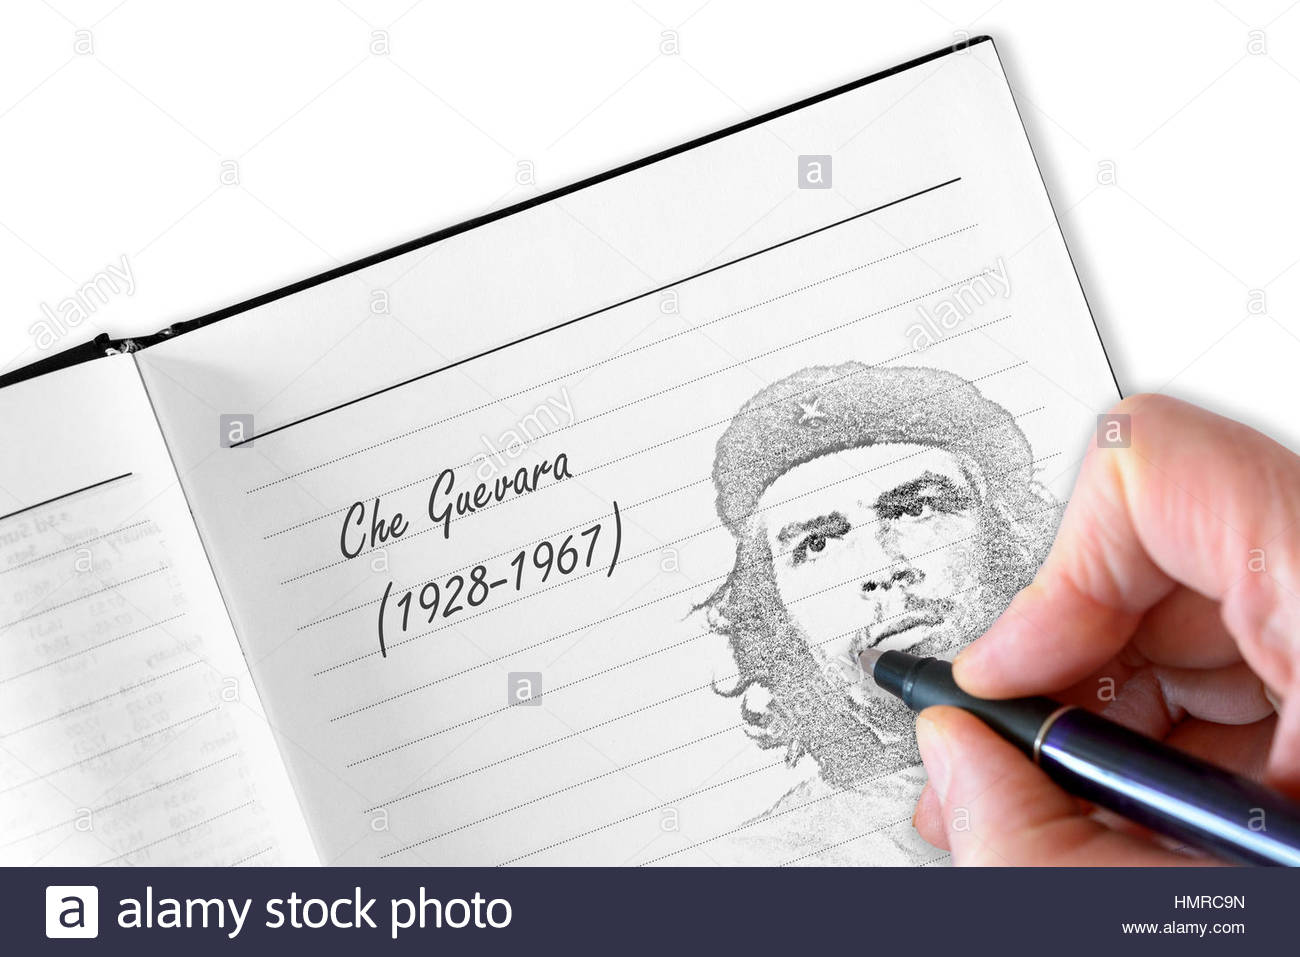 Che guevara sketched in notebook stock photo 133280273 alamy